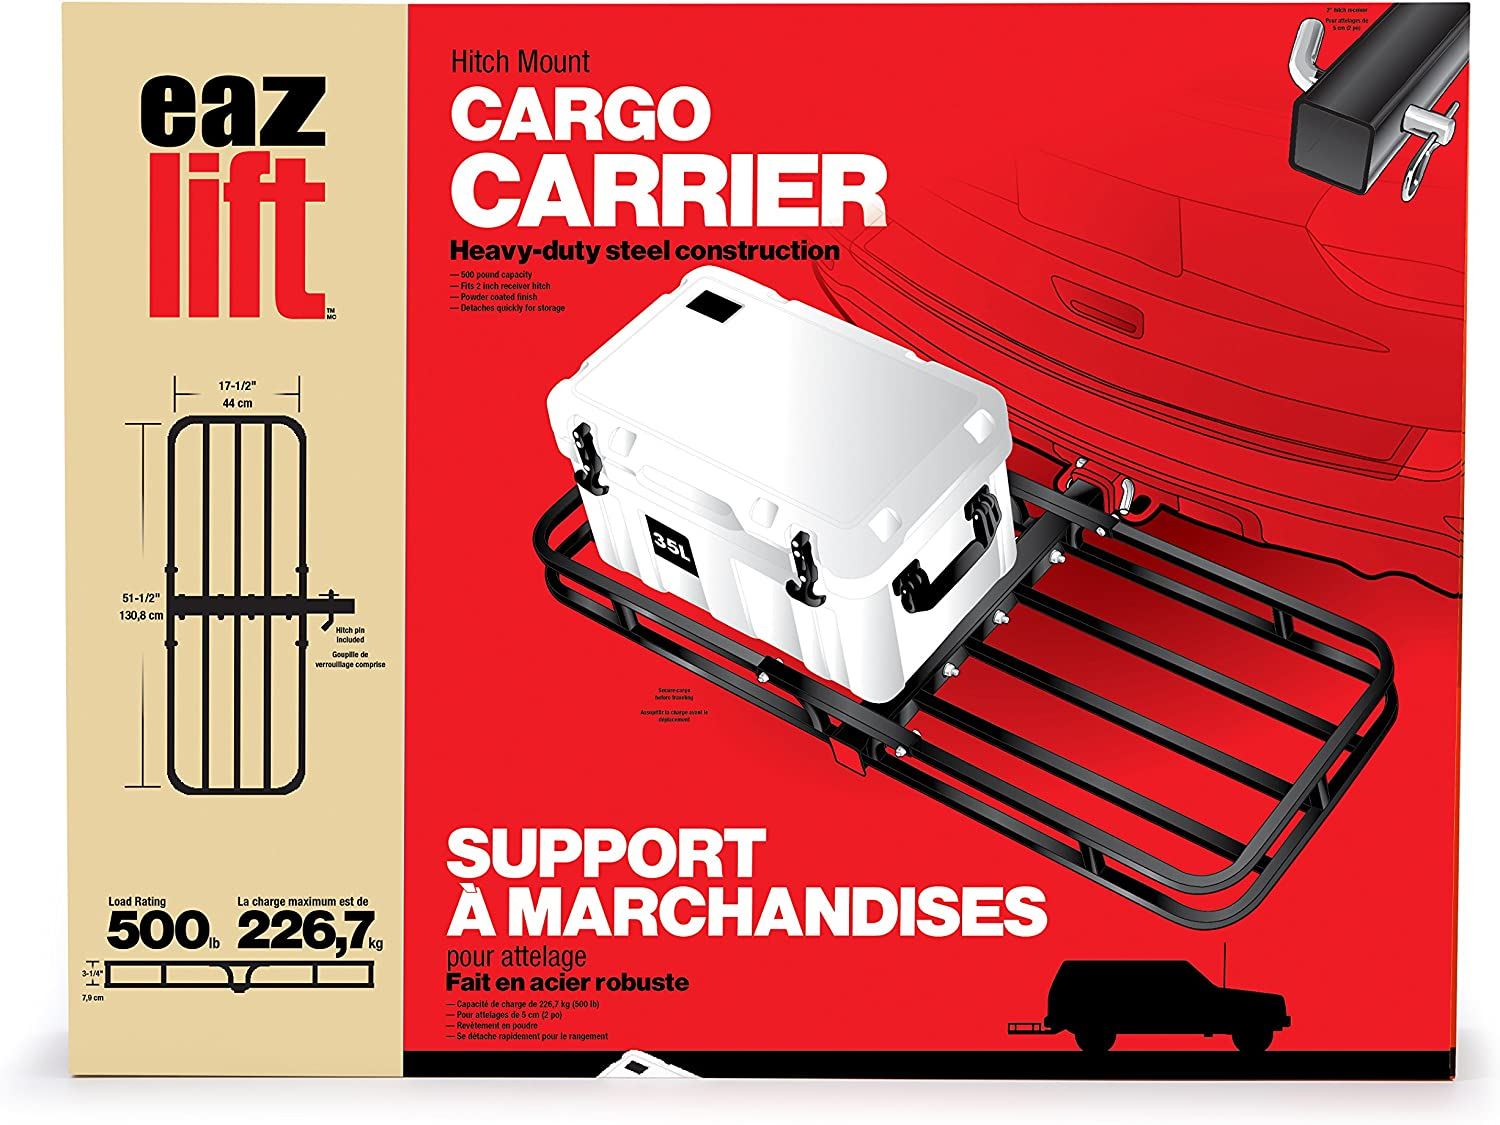 Eaz Lift Camco 48475 Hitch Mount Cargo Carrier